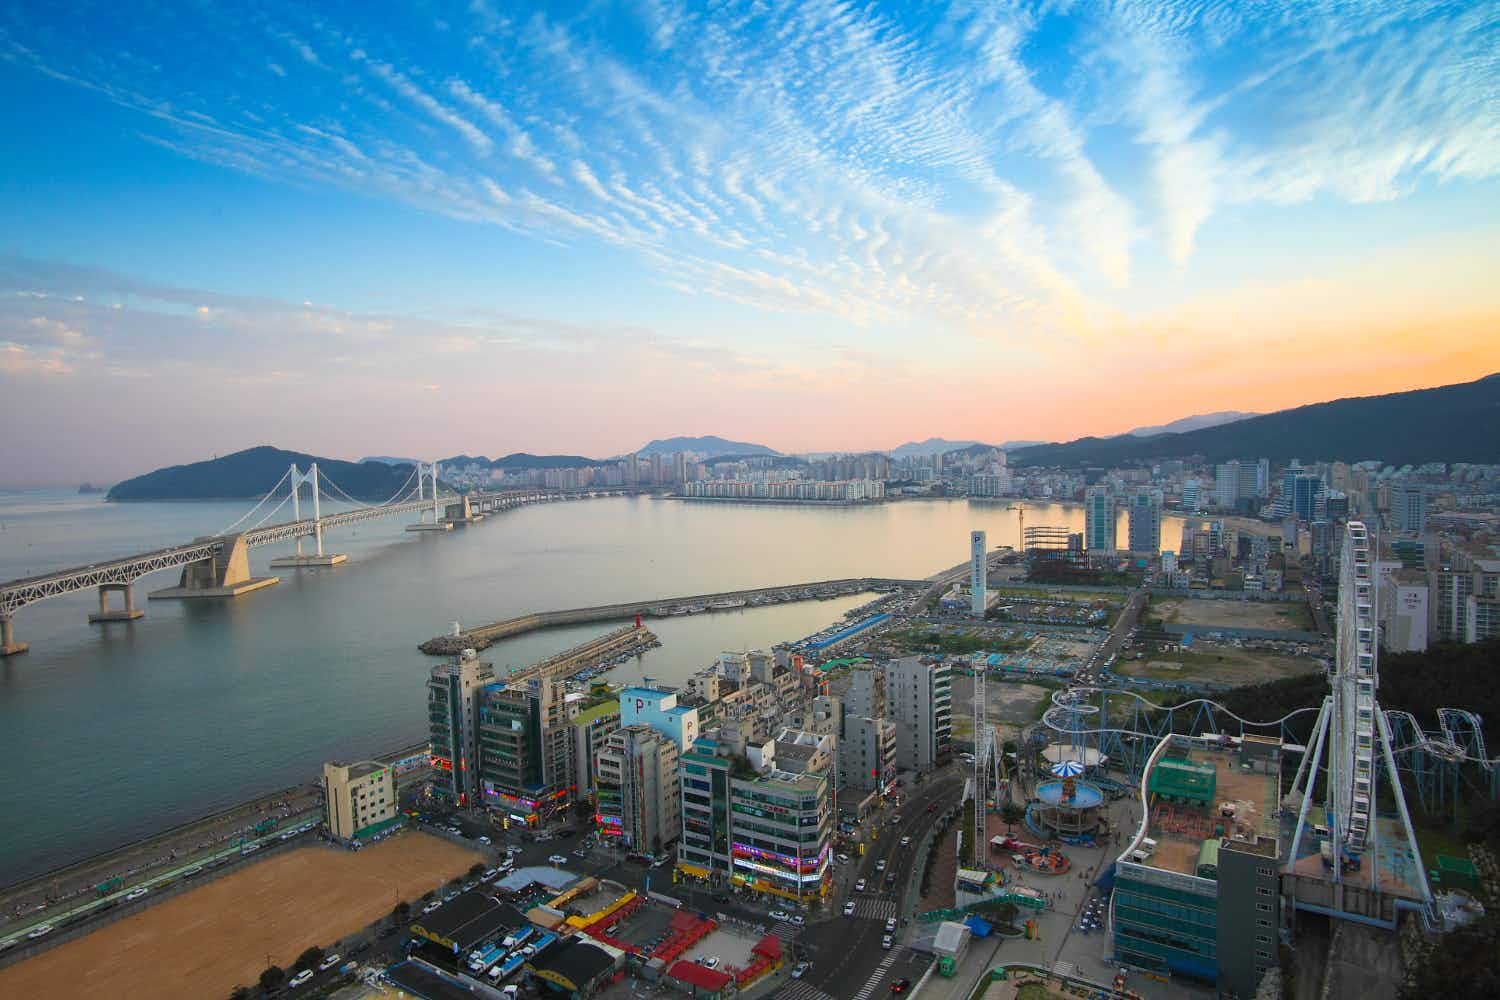 Essential Busan: 10 highlights of South Korea's second city